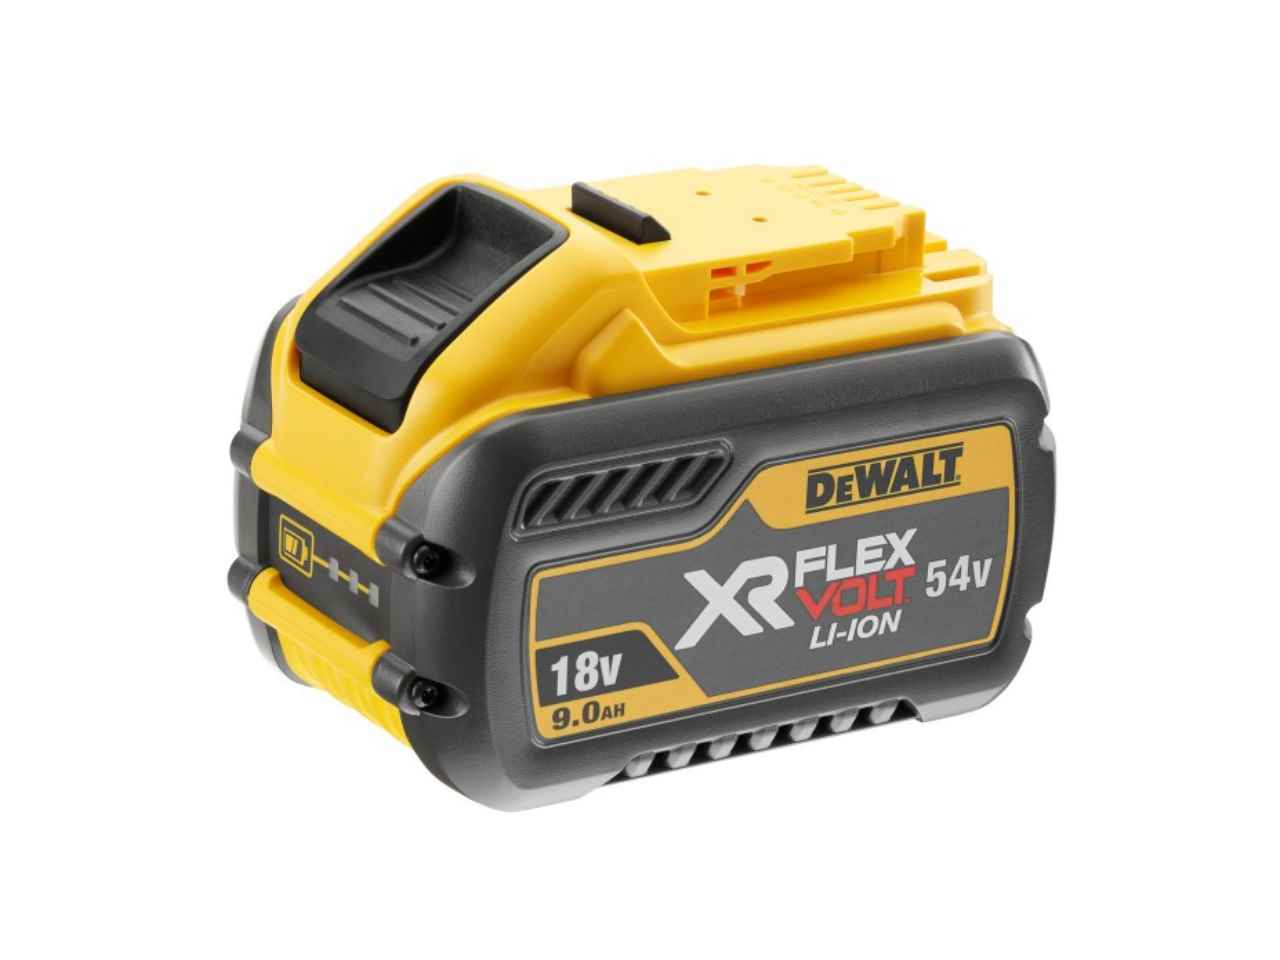 DeWalt DCB547 18V/54V Li-Ion XR Flexvolt Convertible Battery 9 0Ah